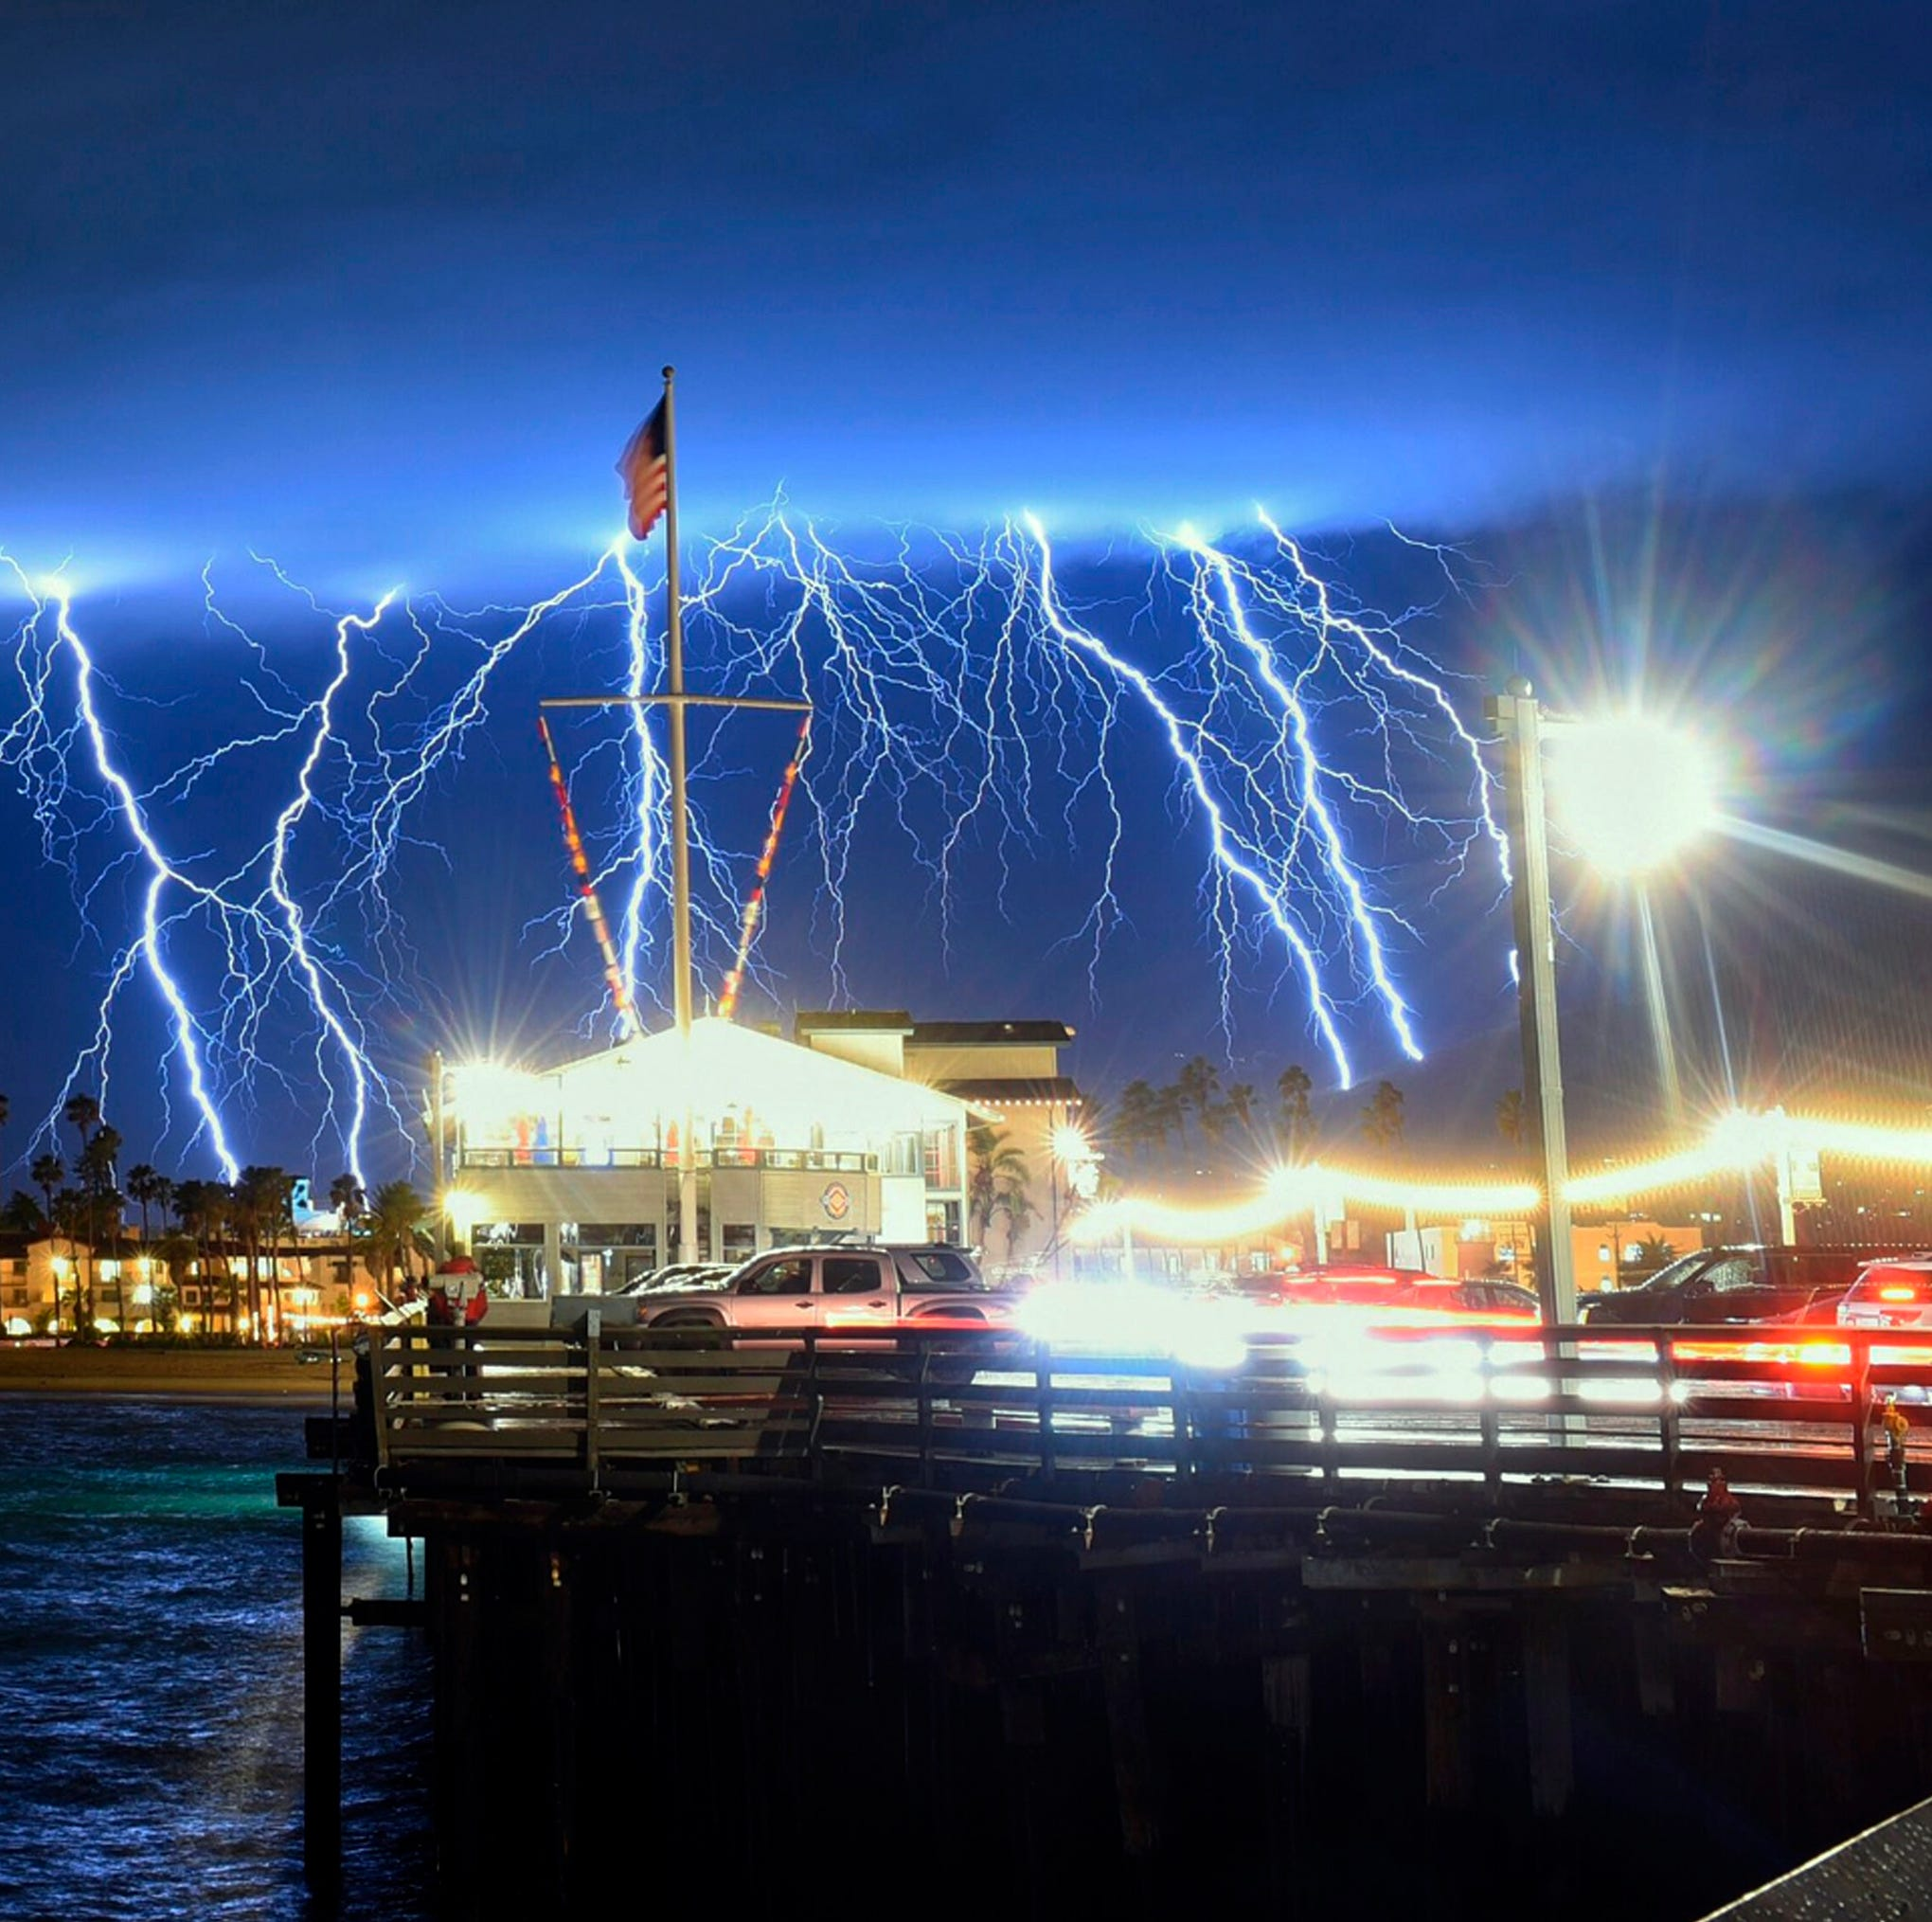 No major damage reported after storm unleashes thunder, lightning and lots of rain